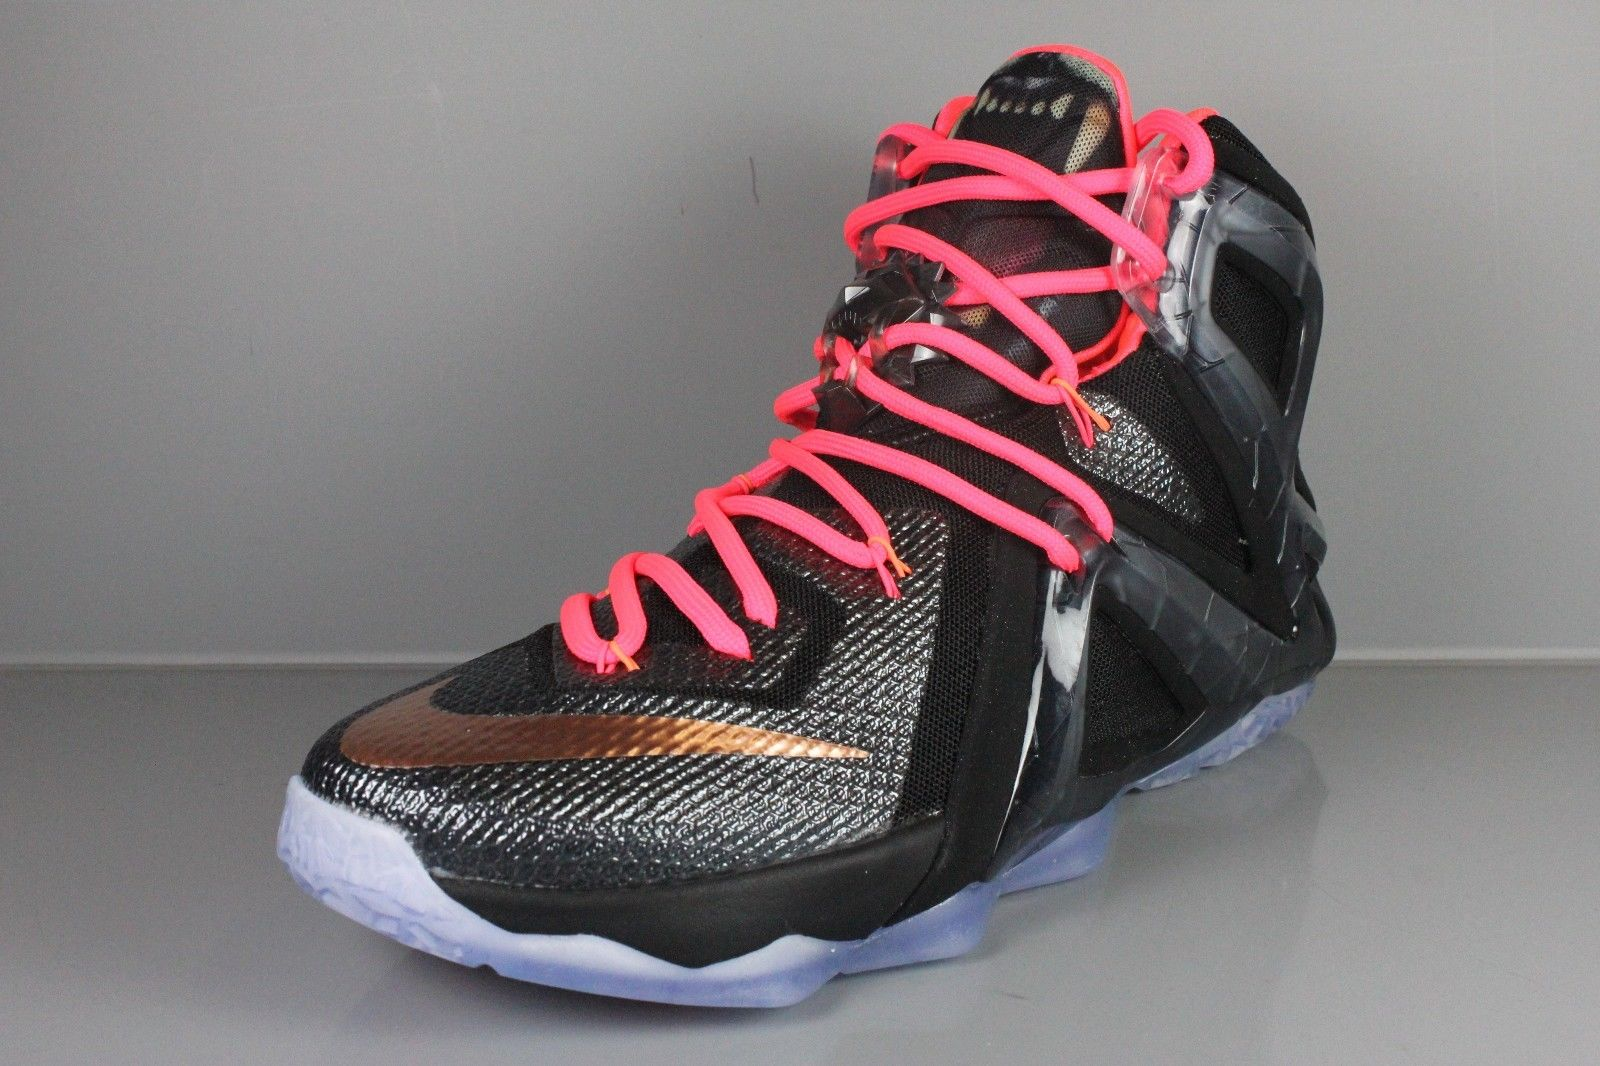 the latest 694a5 92eda Will LeBron James Ever Wear This Nike LeBron 12 Elite